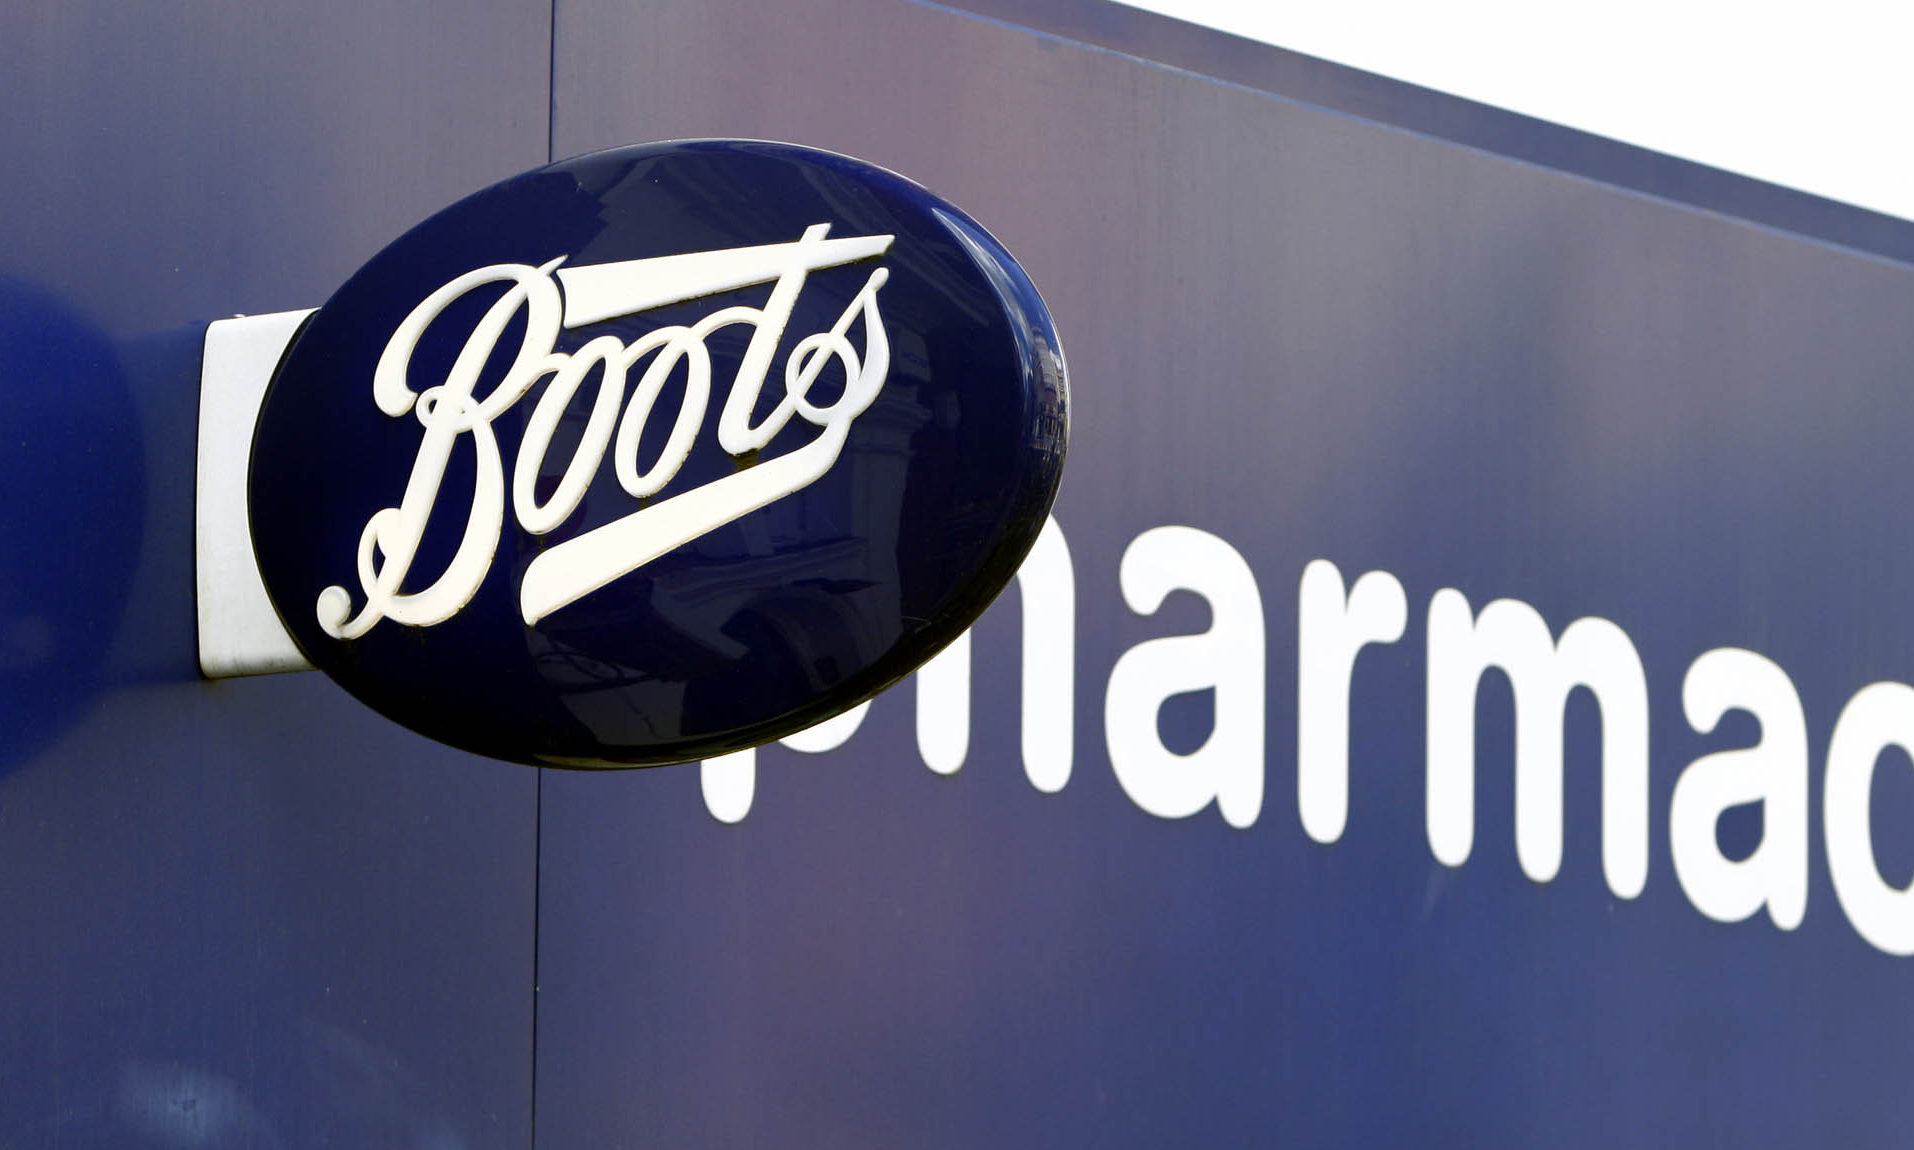 A Boots store.